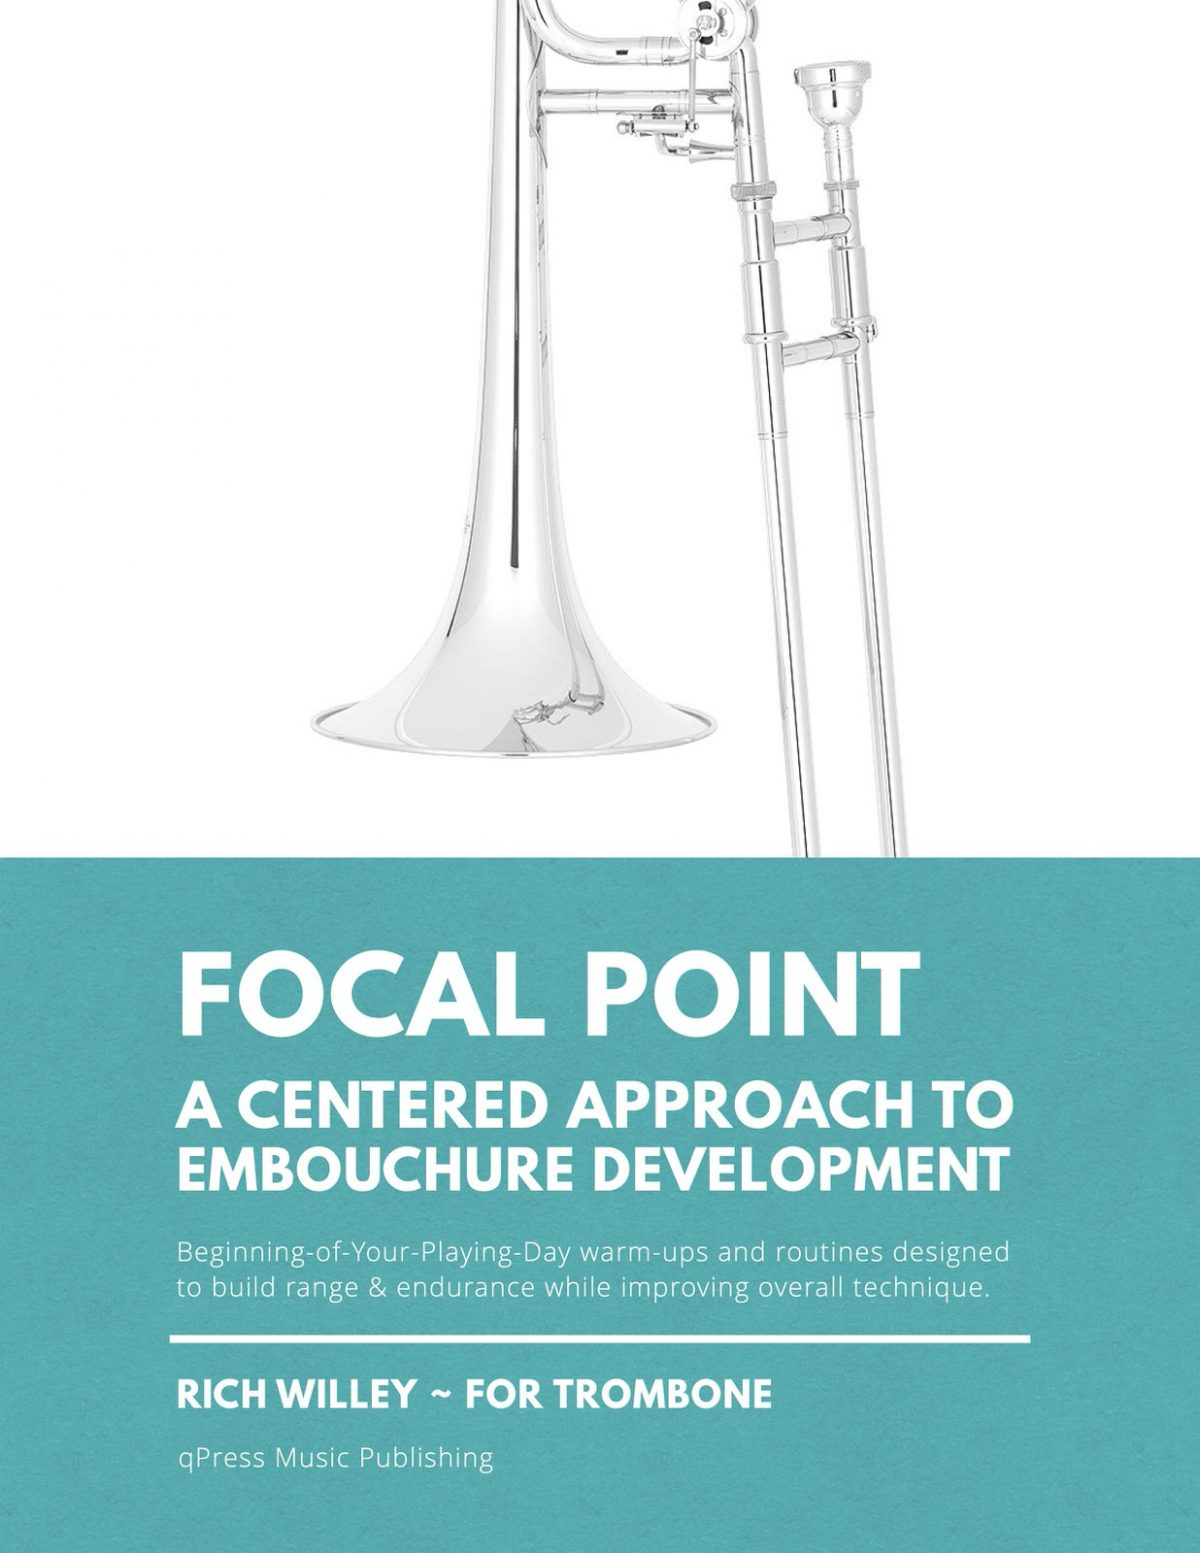 Willey, Focal Point — A Centered Approach To Embouchure Development for Trombone-p01